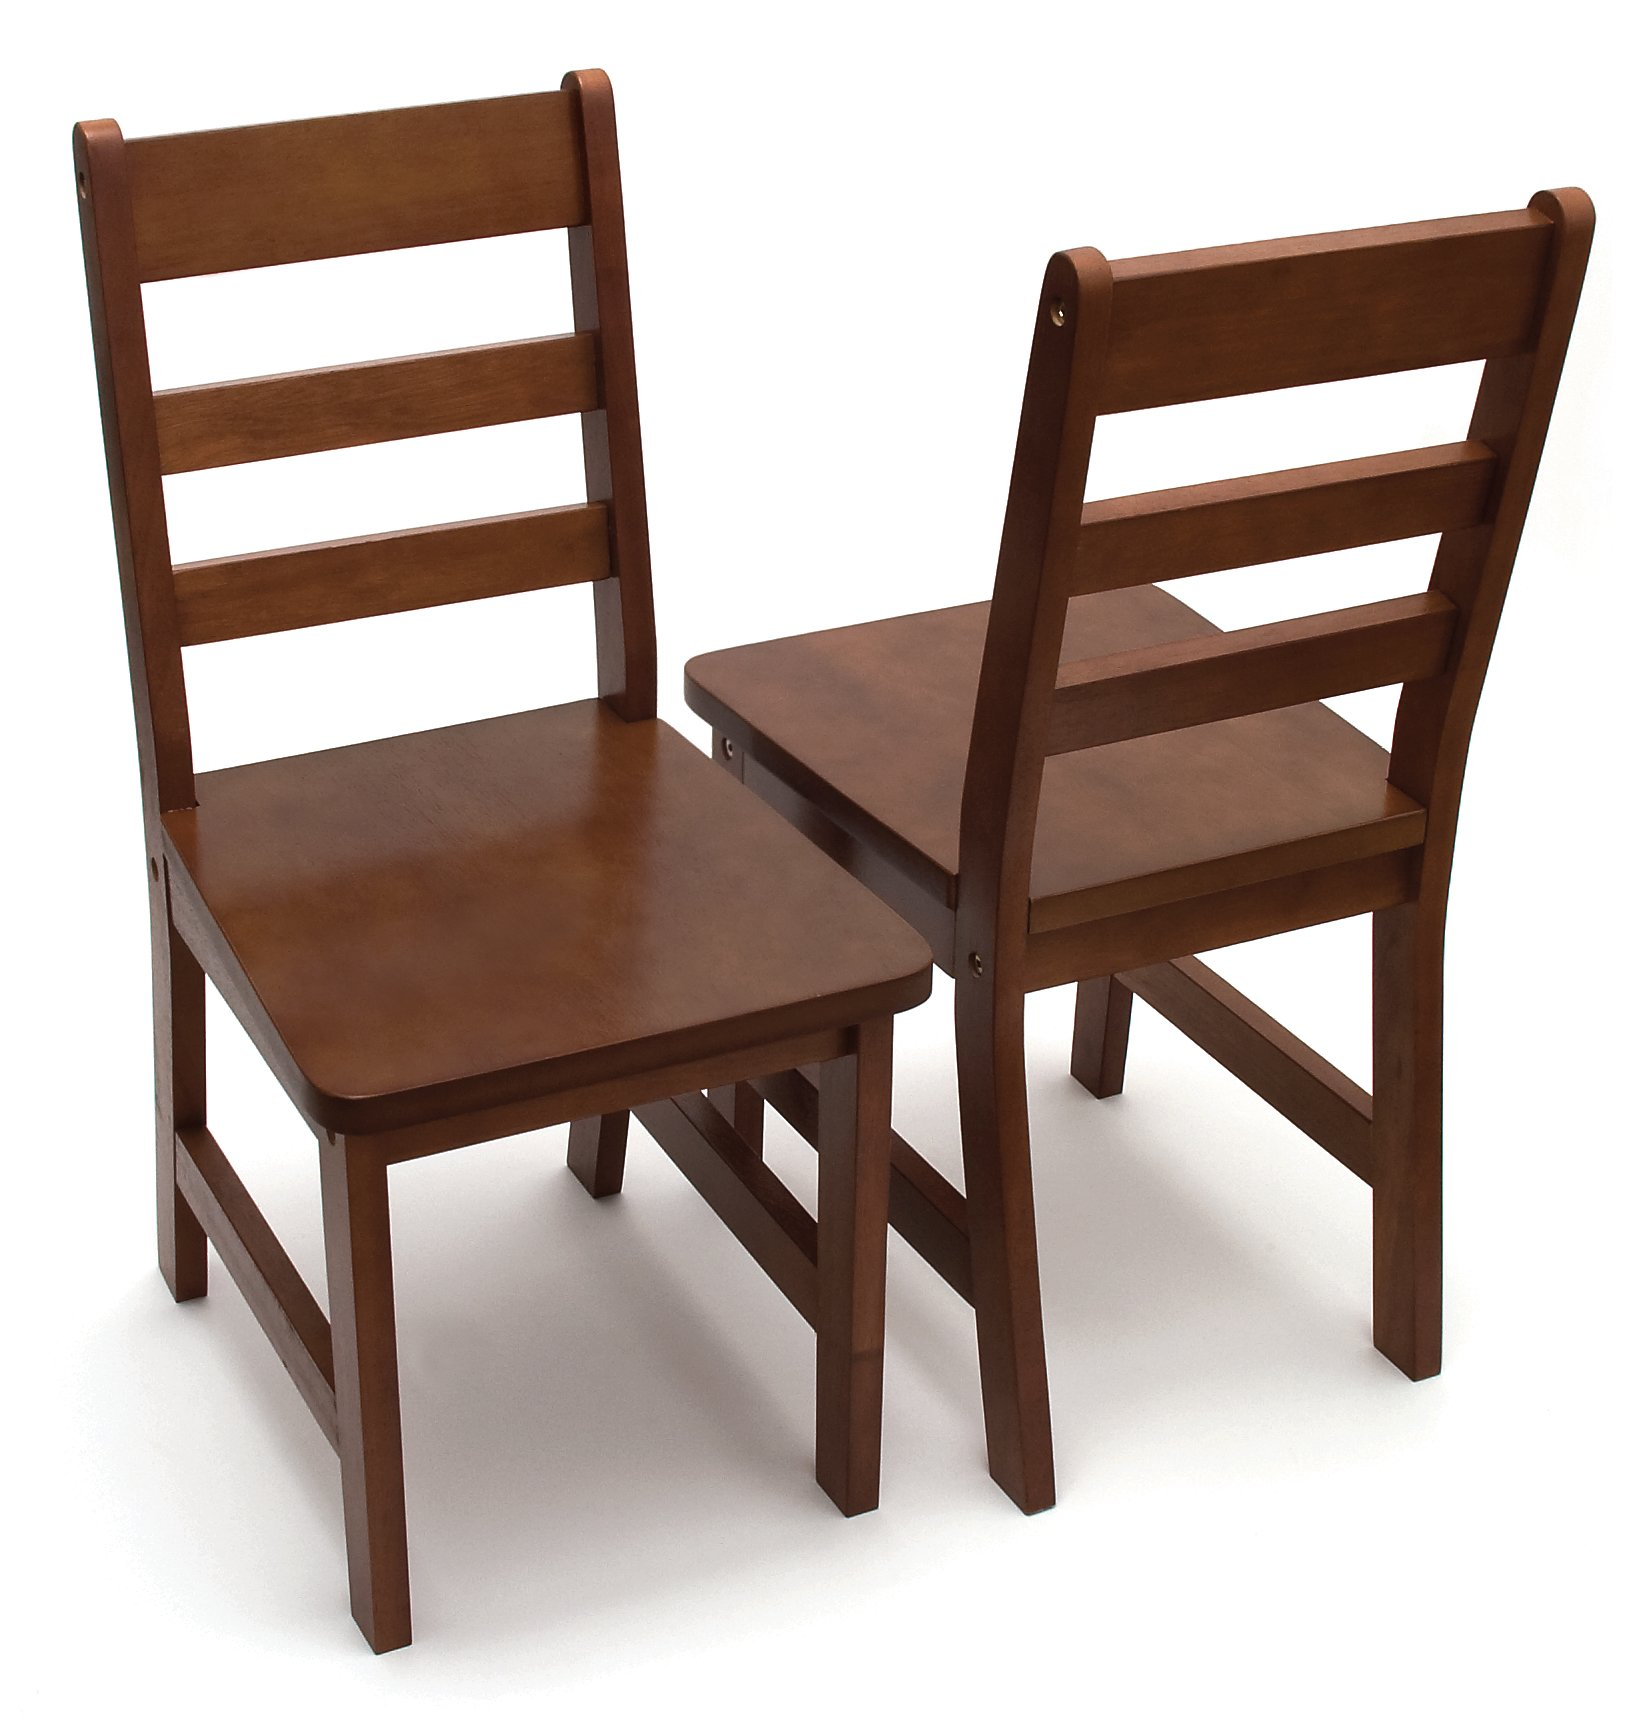 Lipper International 523-4WN Child's Chairs for Play or Activity, 12.38'' W x 15'' D x 26.63'' H, Set of 2, Walnut Finish